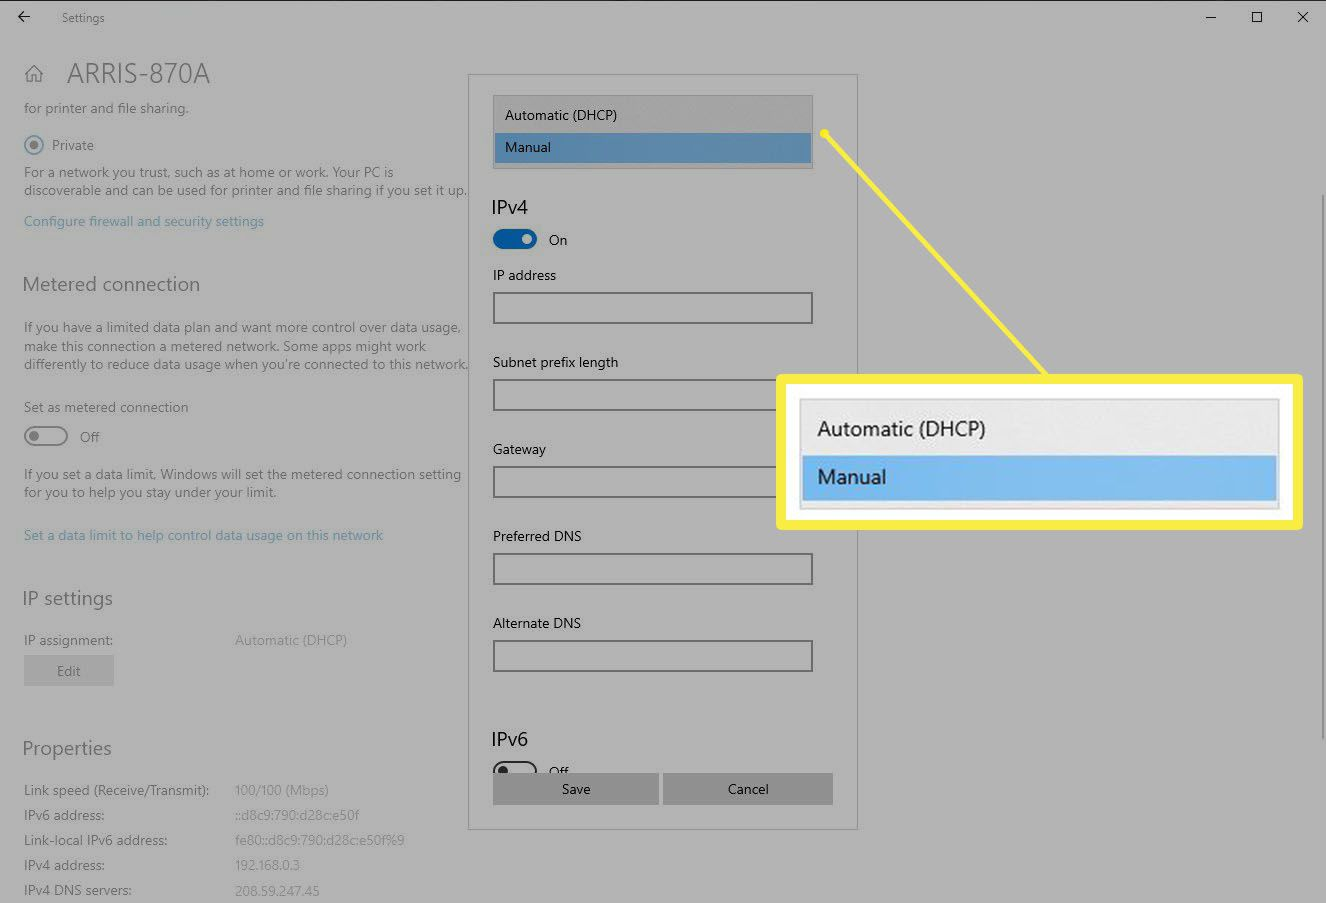 Switching the IP Settings from Automatic to Manual in Windows Settings